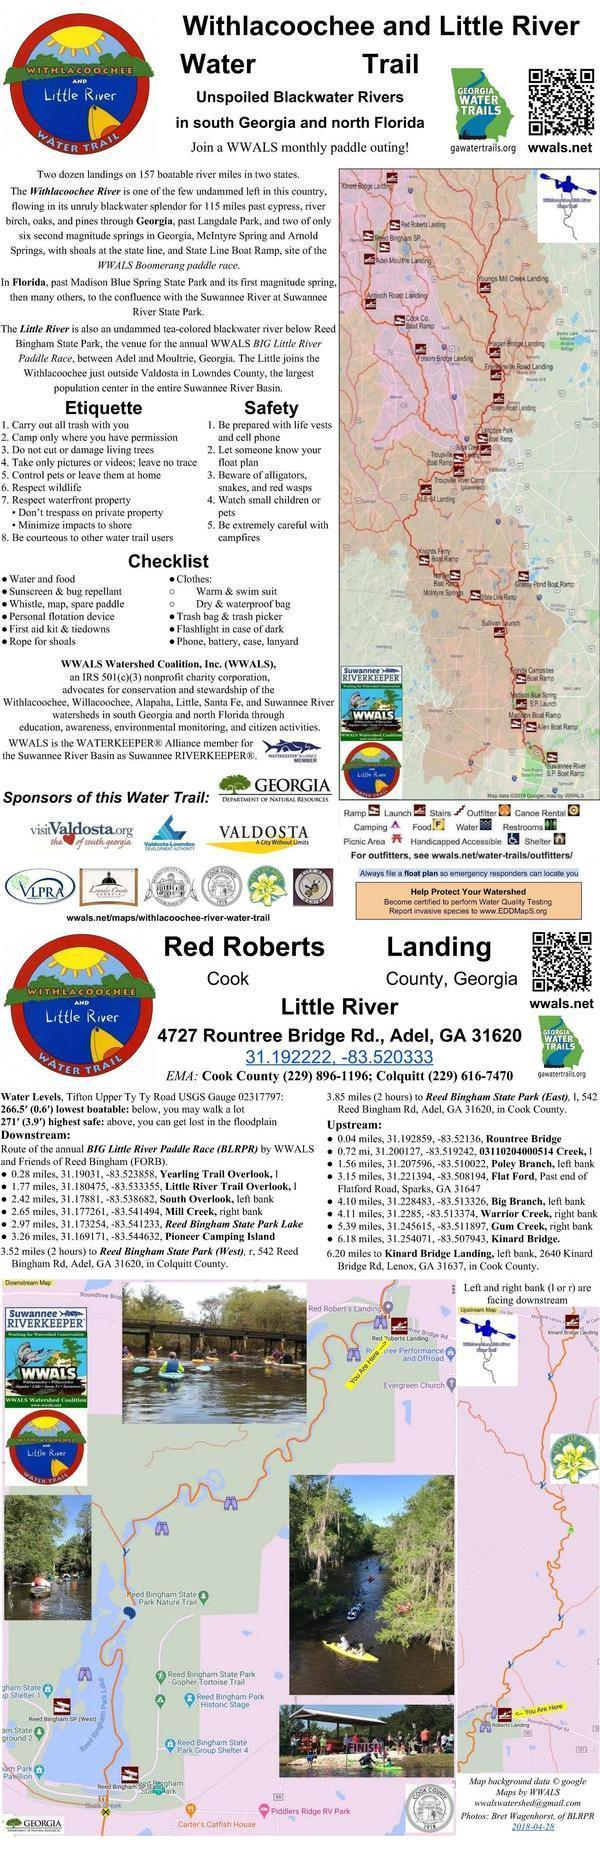 [Little River signpost: Red Roberts Landing]